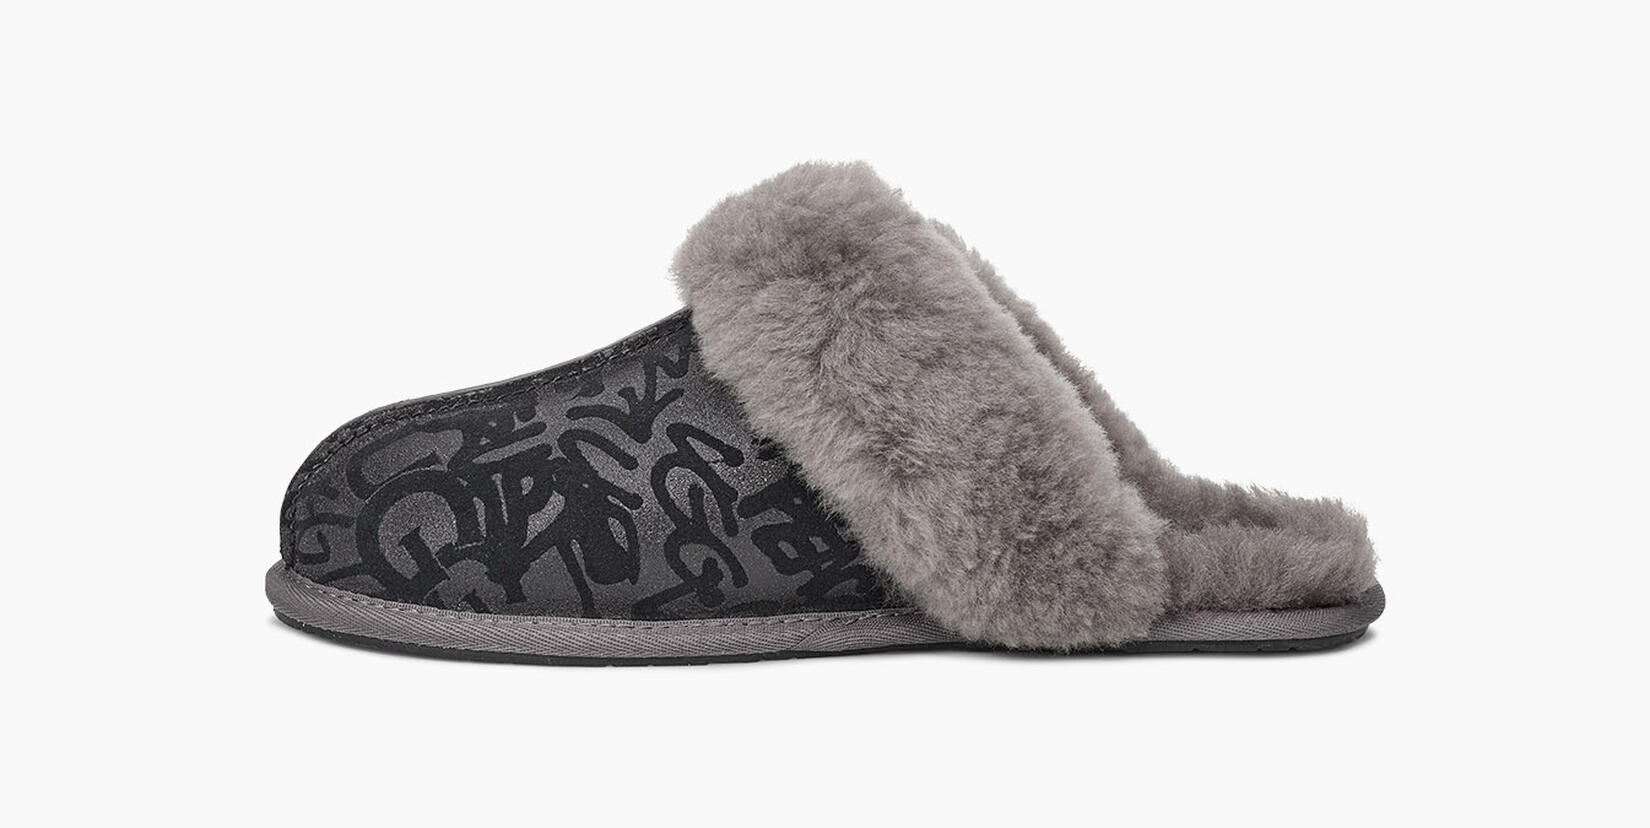 Scuffette II Sparkle Graffiti Slipper